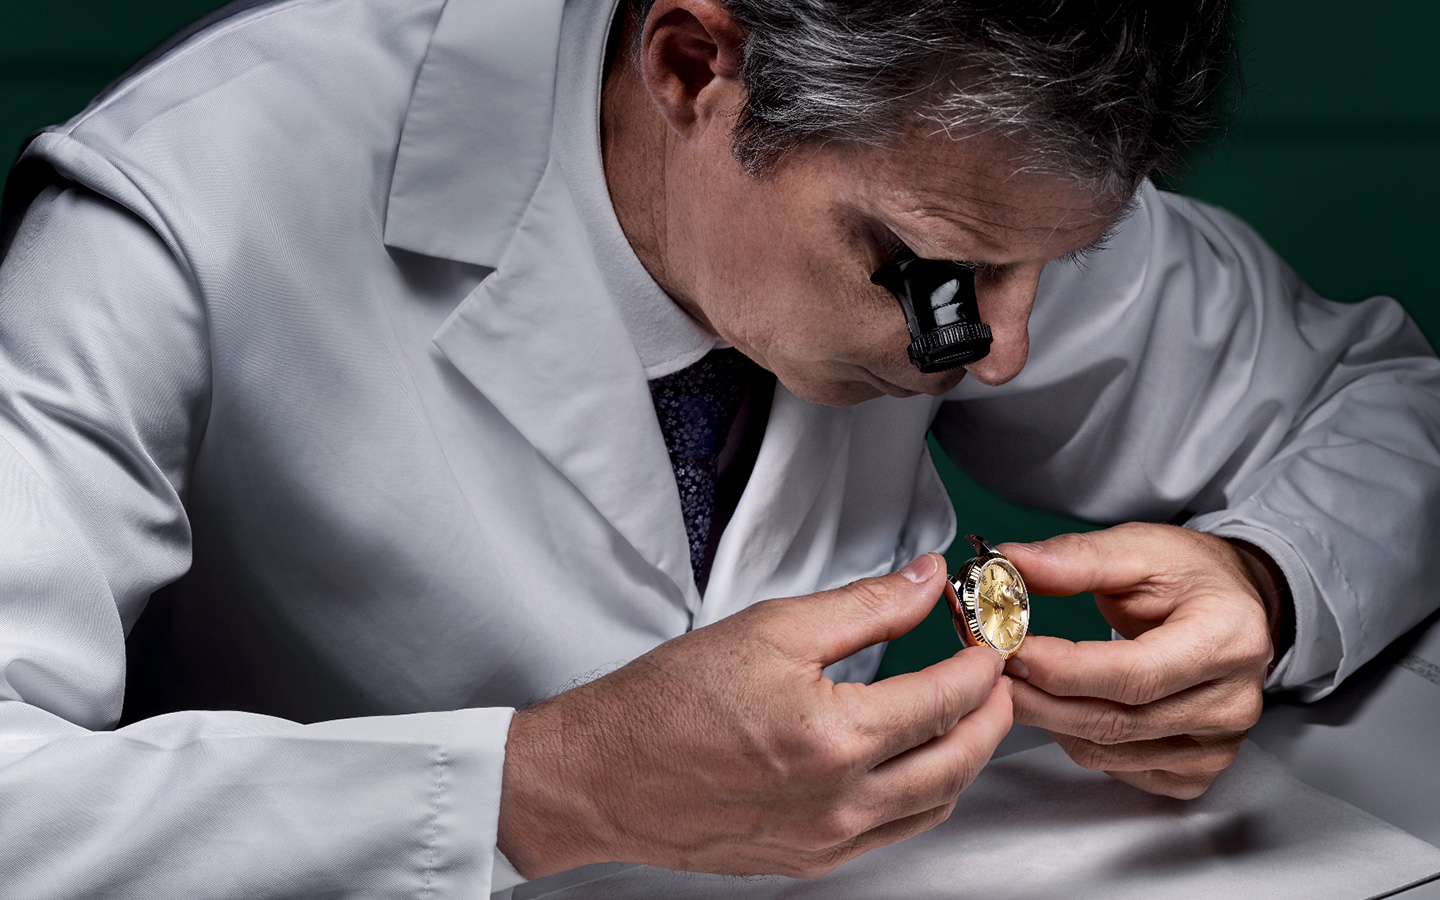 SERVICING YOUR ROLEX AT PONS 1845